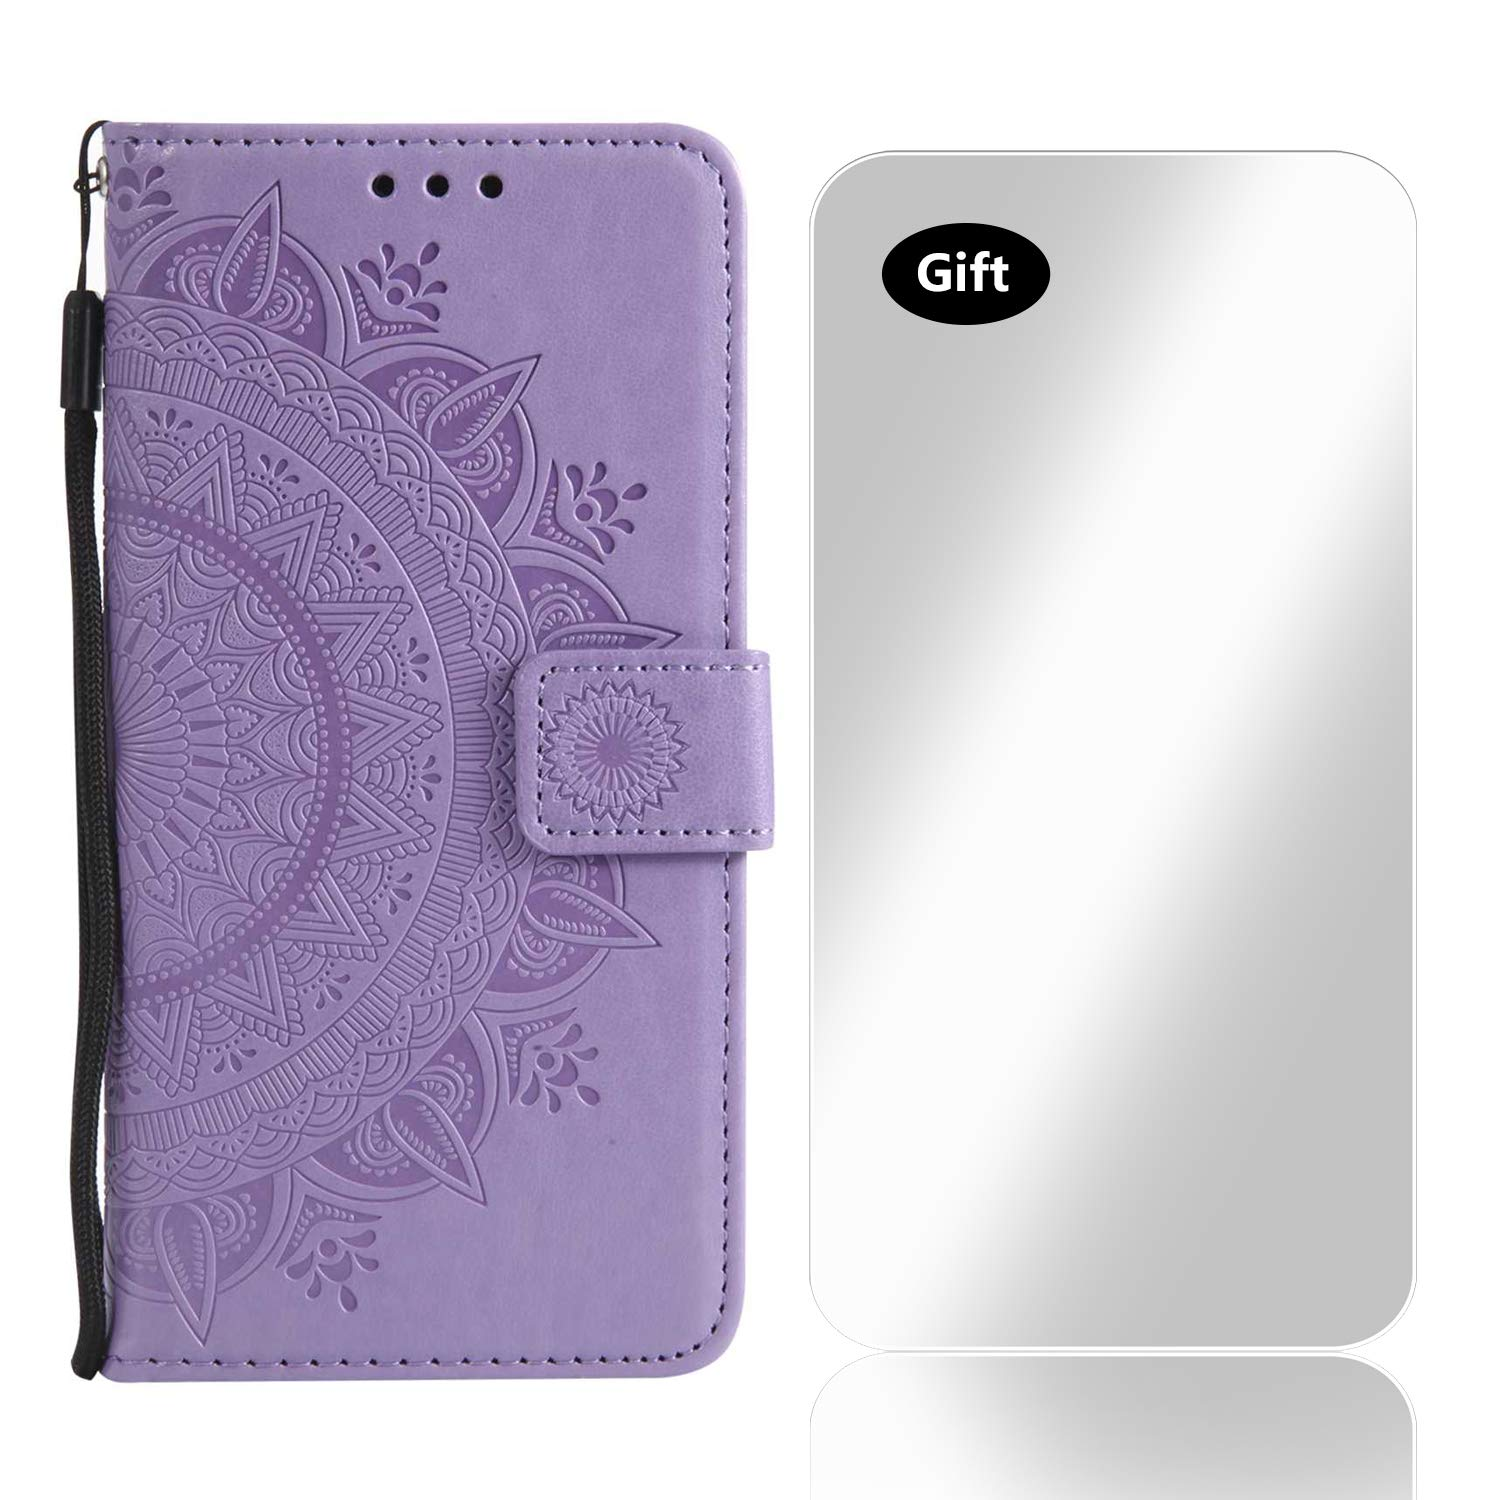 Bear Village Case LG K10 2017, PU Leather Embossed Design Case with Free Tempered Glass Screen Protector, Wallet Flip Stand Cover for LG K10 2017 (#3 Purple)